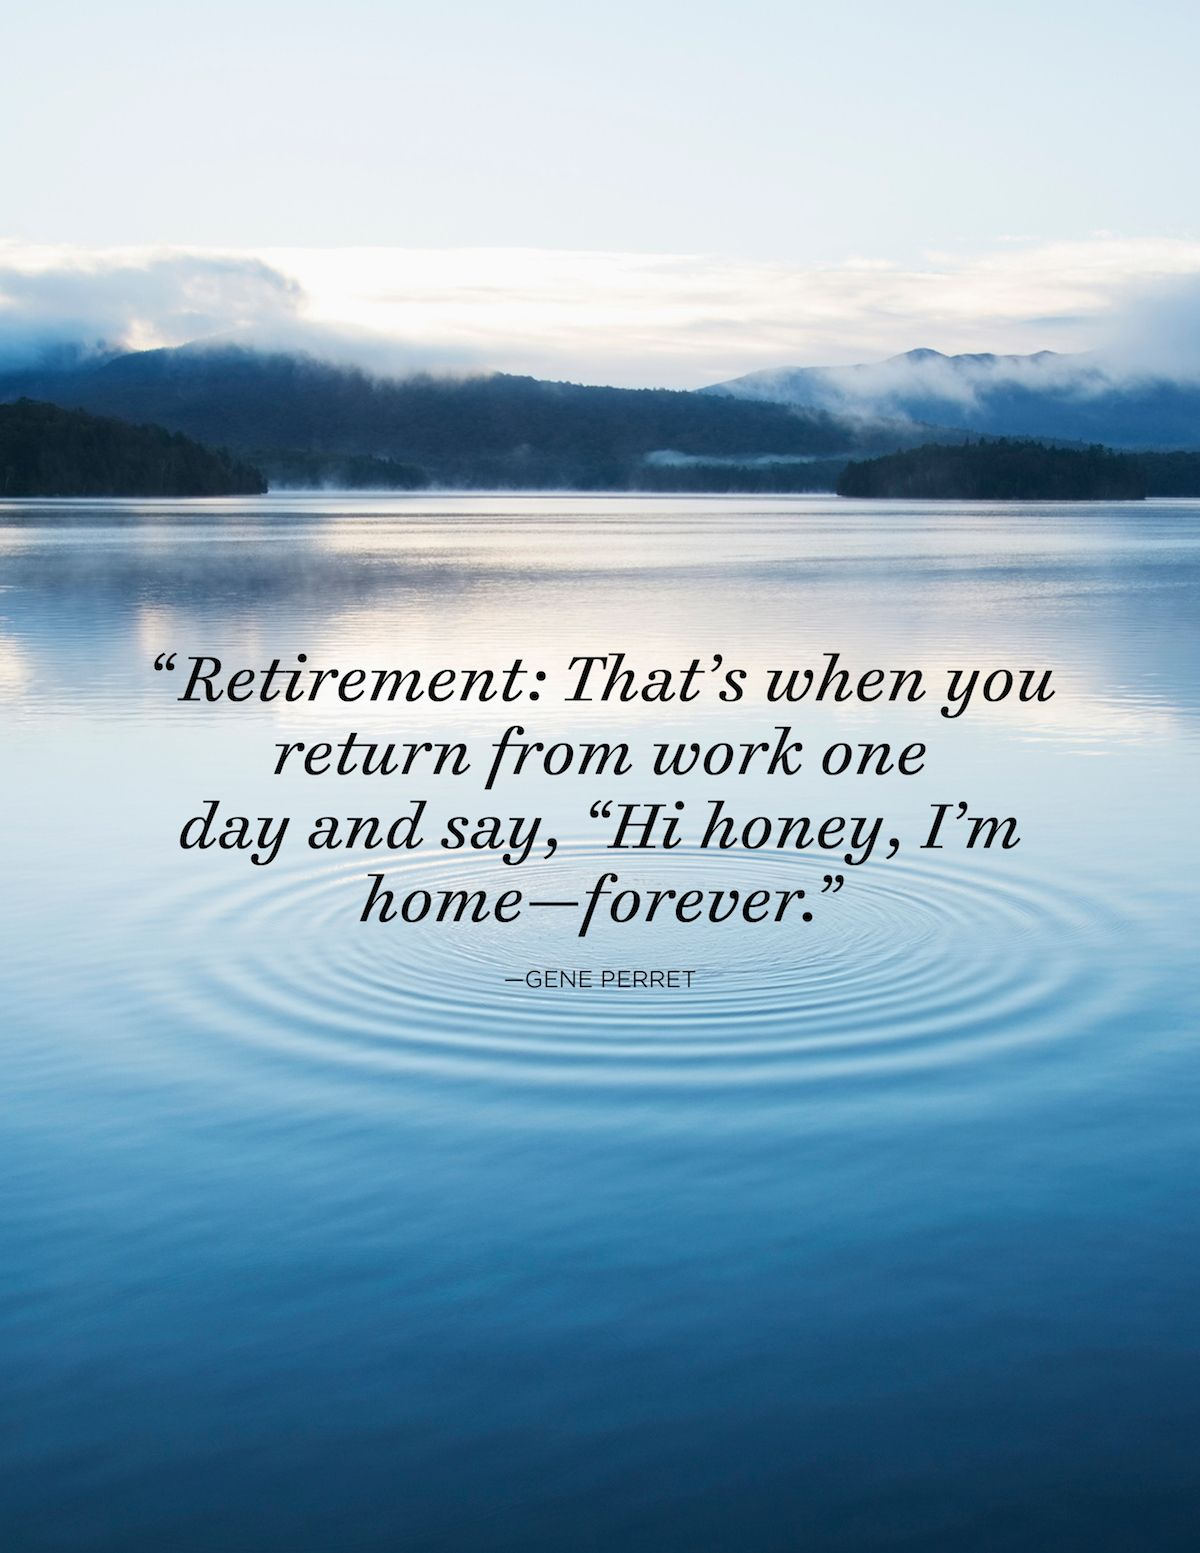 35 Great Retirement Quotes - Funny and Inspirational Quotes About Retirement